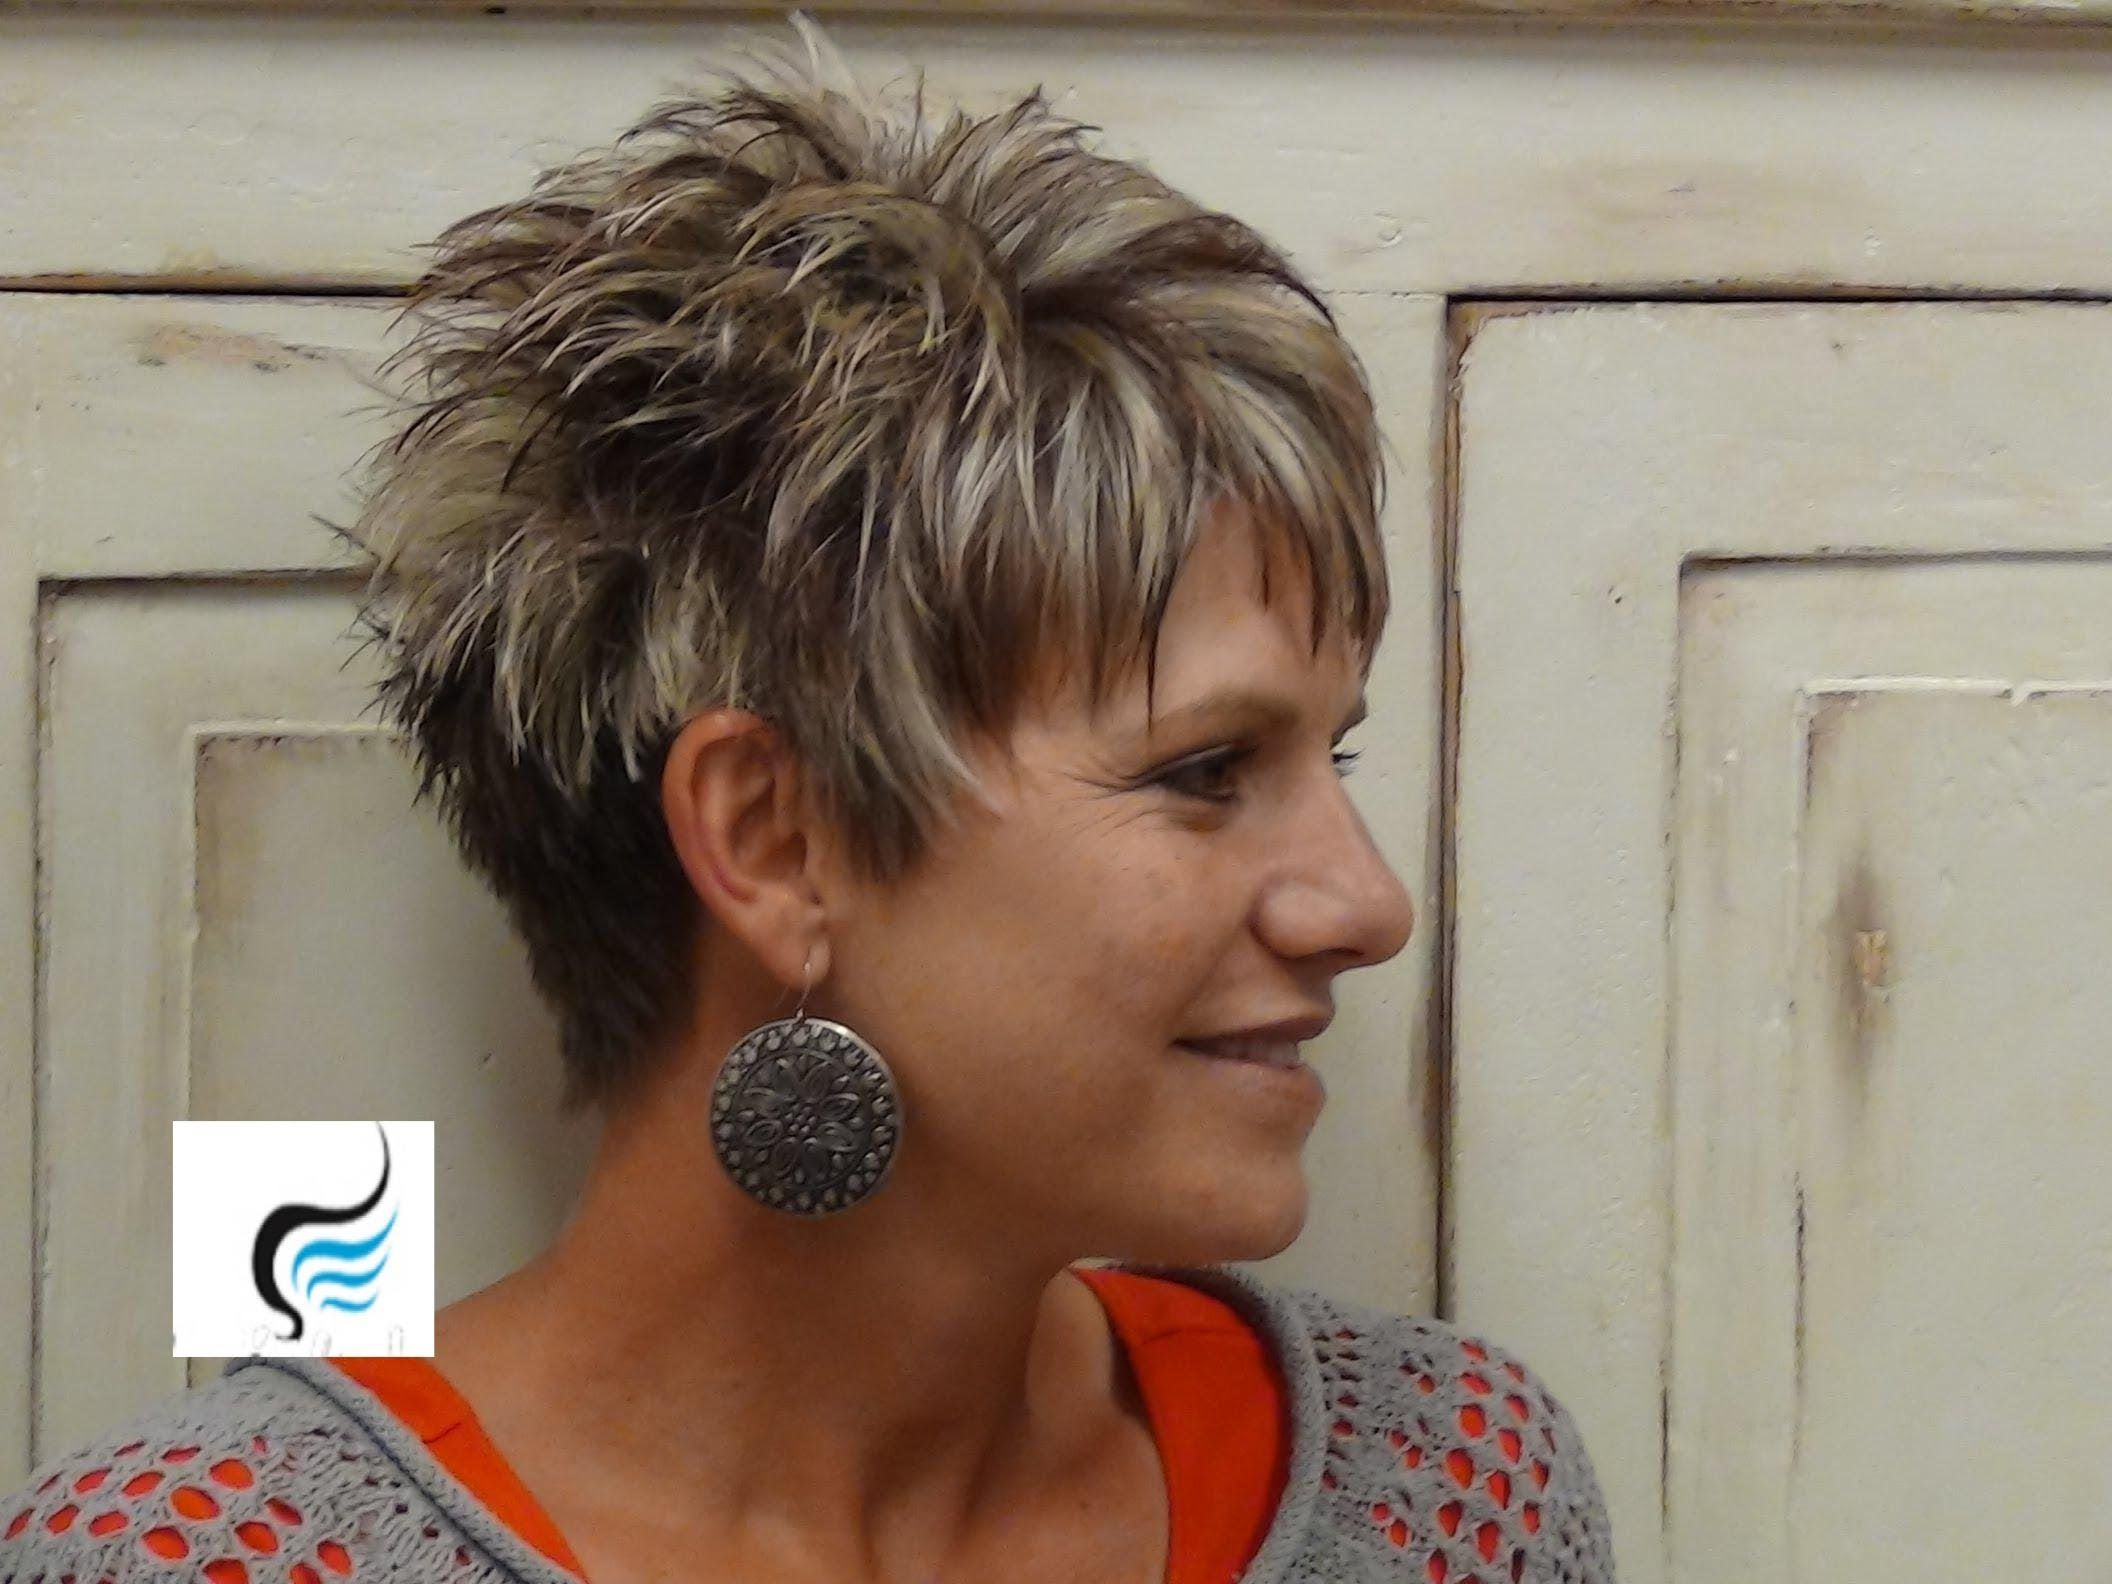 great tutorial on how to cut hair short. love this look